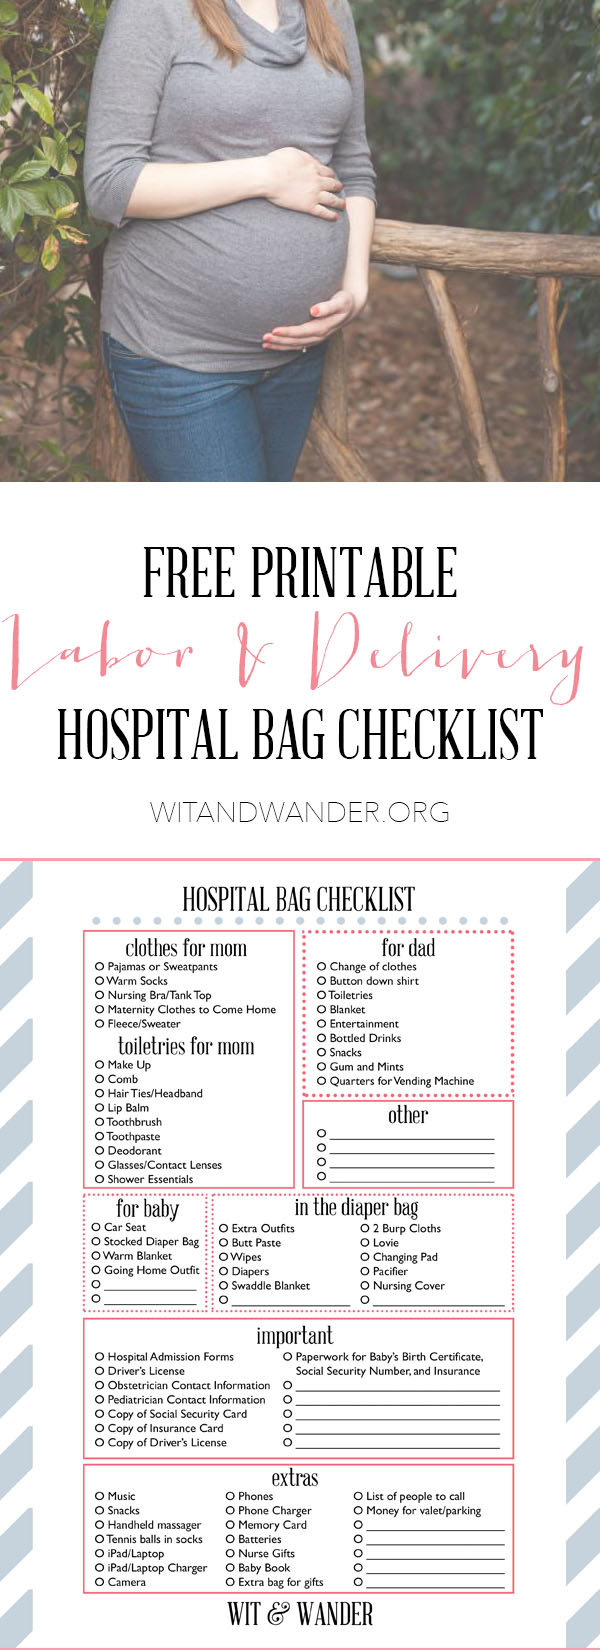 It is an image of Playful Printable Hospital Bag Checklist for Labor and Delivery